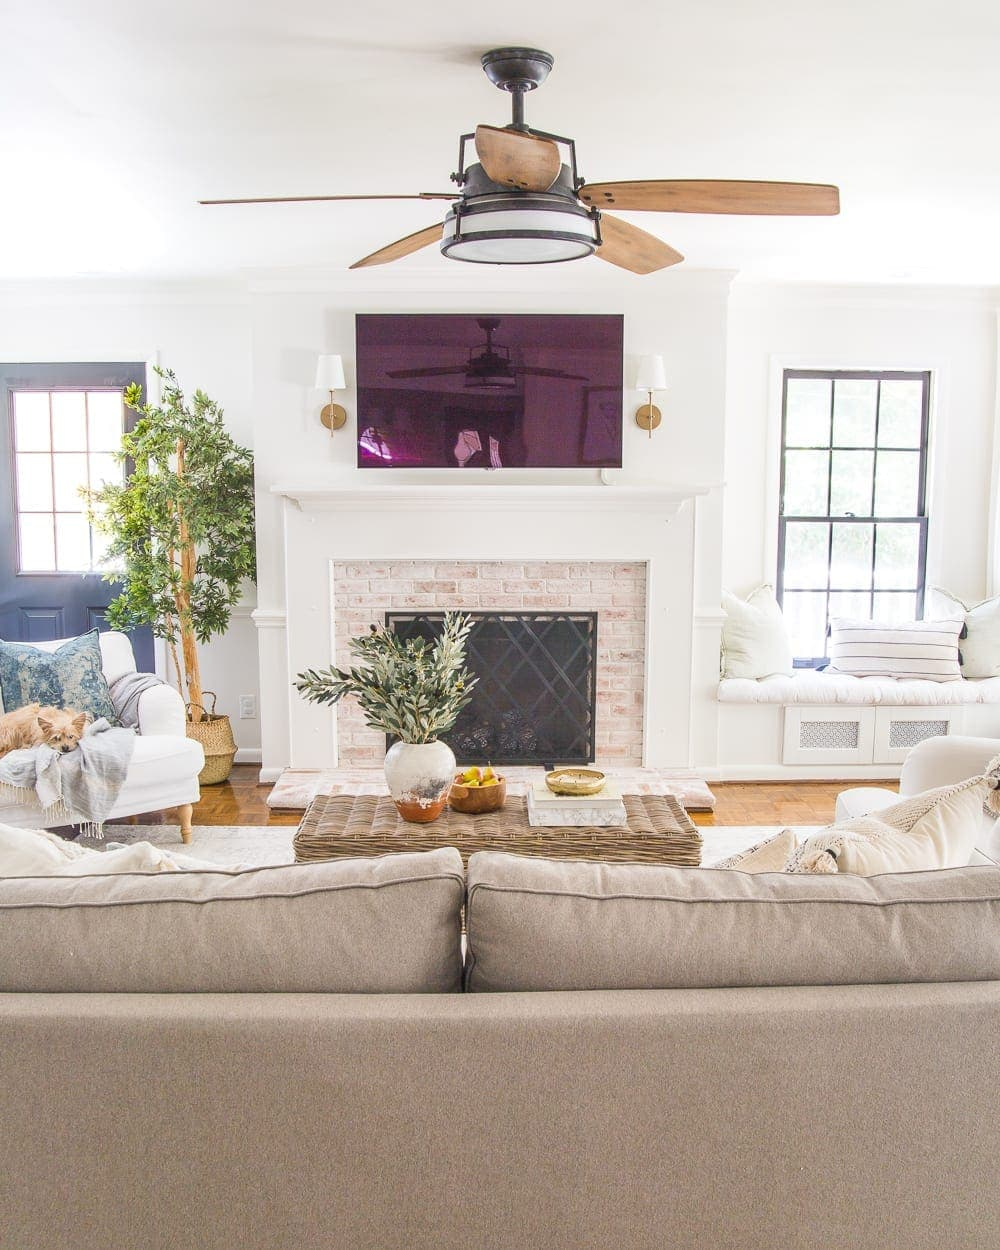 Rustic modern ceiling fan in a neutral living room